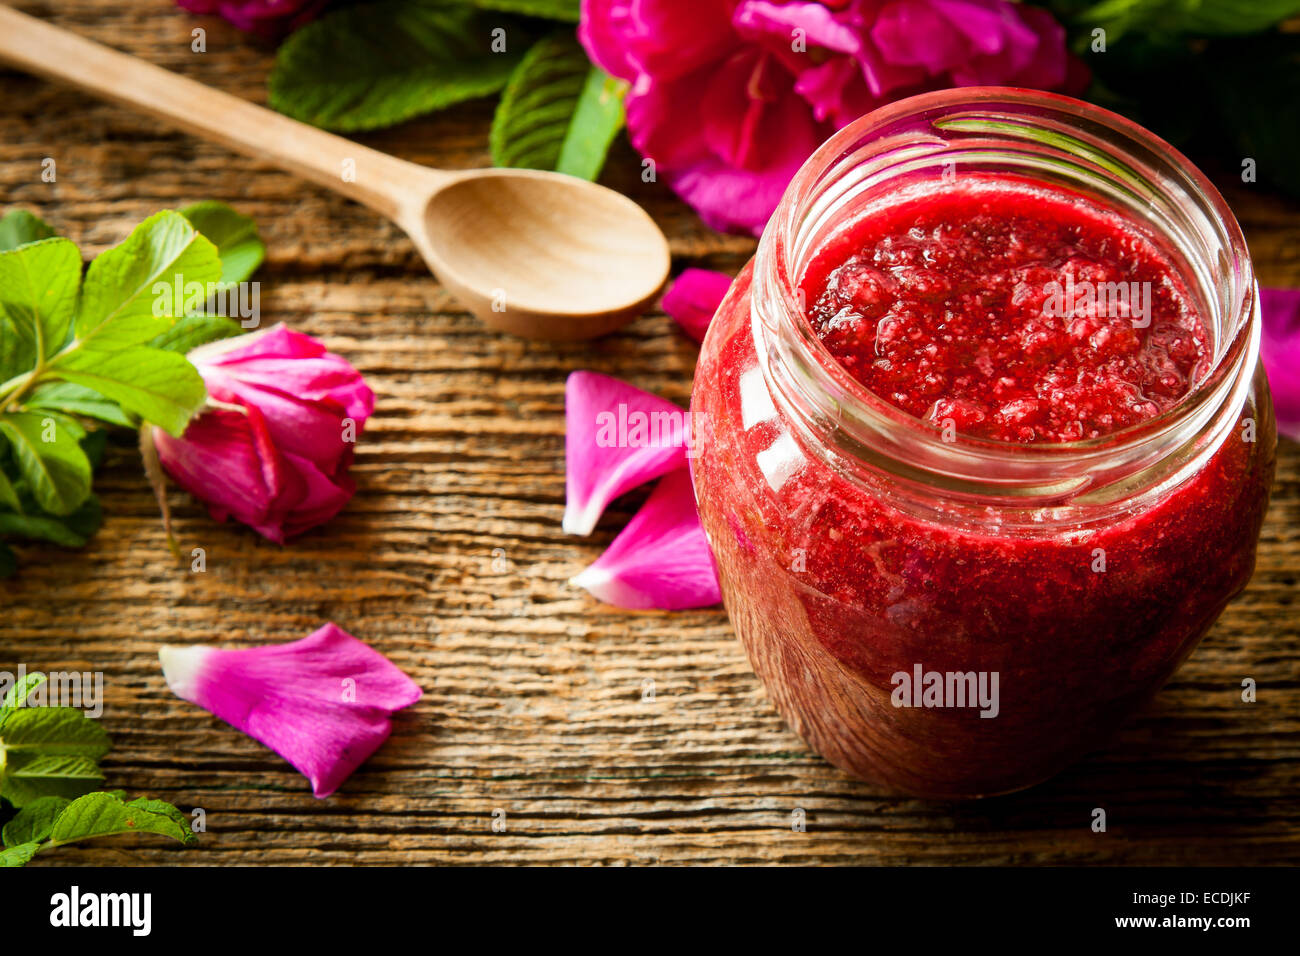 Homemade jam made from damascus petal rose on wooden table. Focus on jar - Stock Image